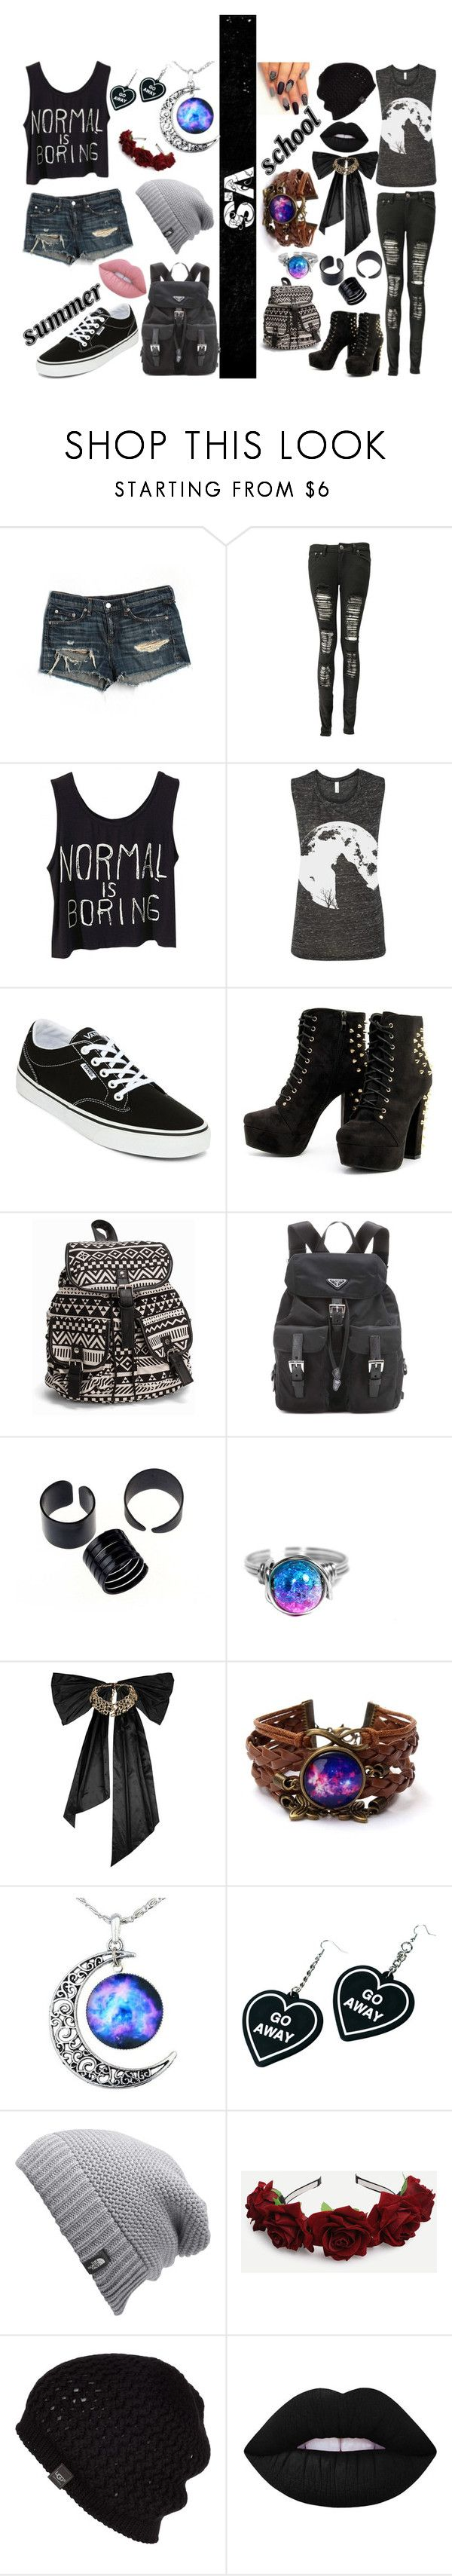 """""""Summer v.s School"""" by kenzie-motionless on Polyvore featuring rag & bone/JEAN, Boohoo, Vans, NLY Accessories, Prada, Oscar de la Renta, Witch Worldwide, The North Face, UGG Australia and Lime Crime"""